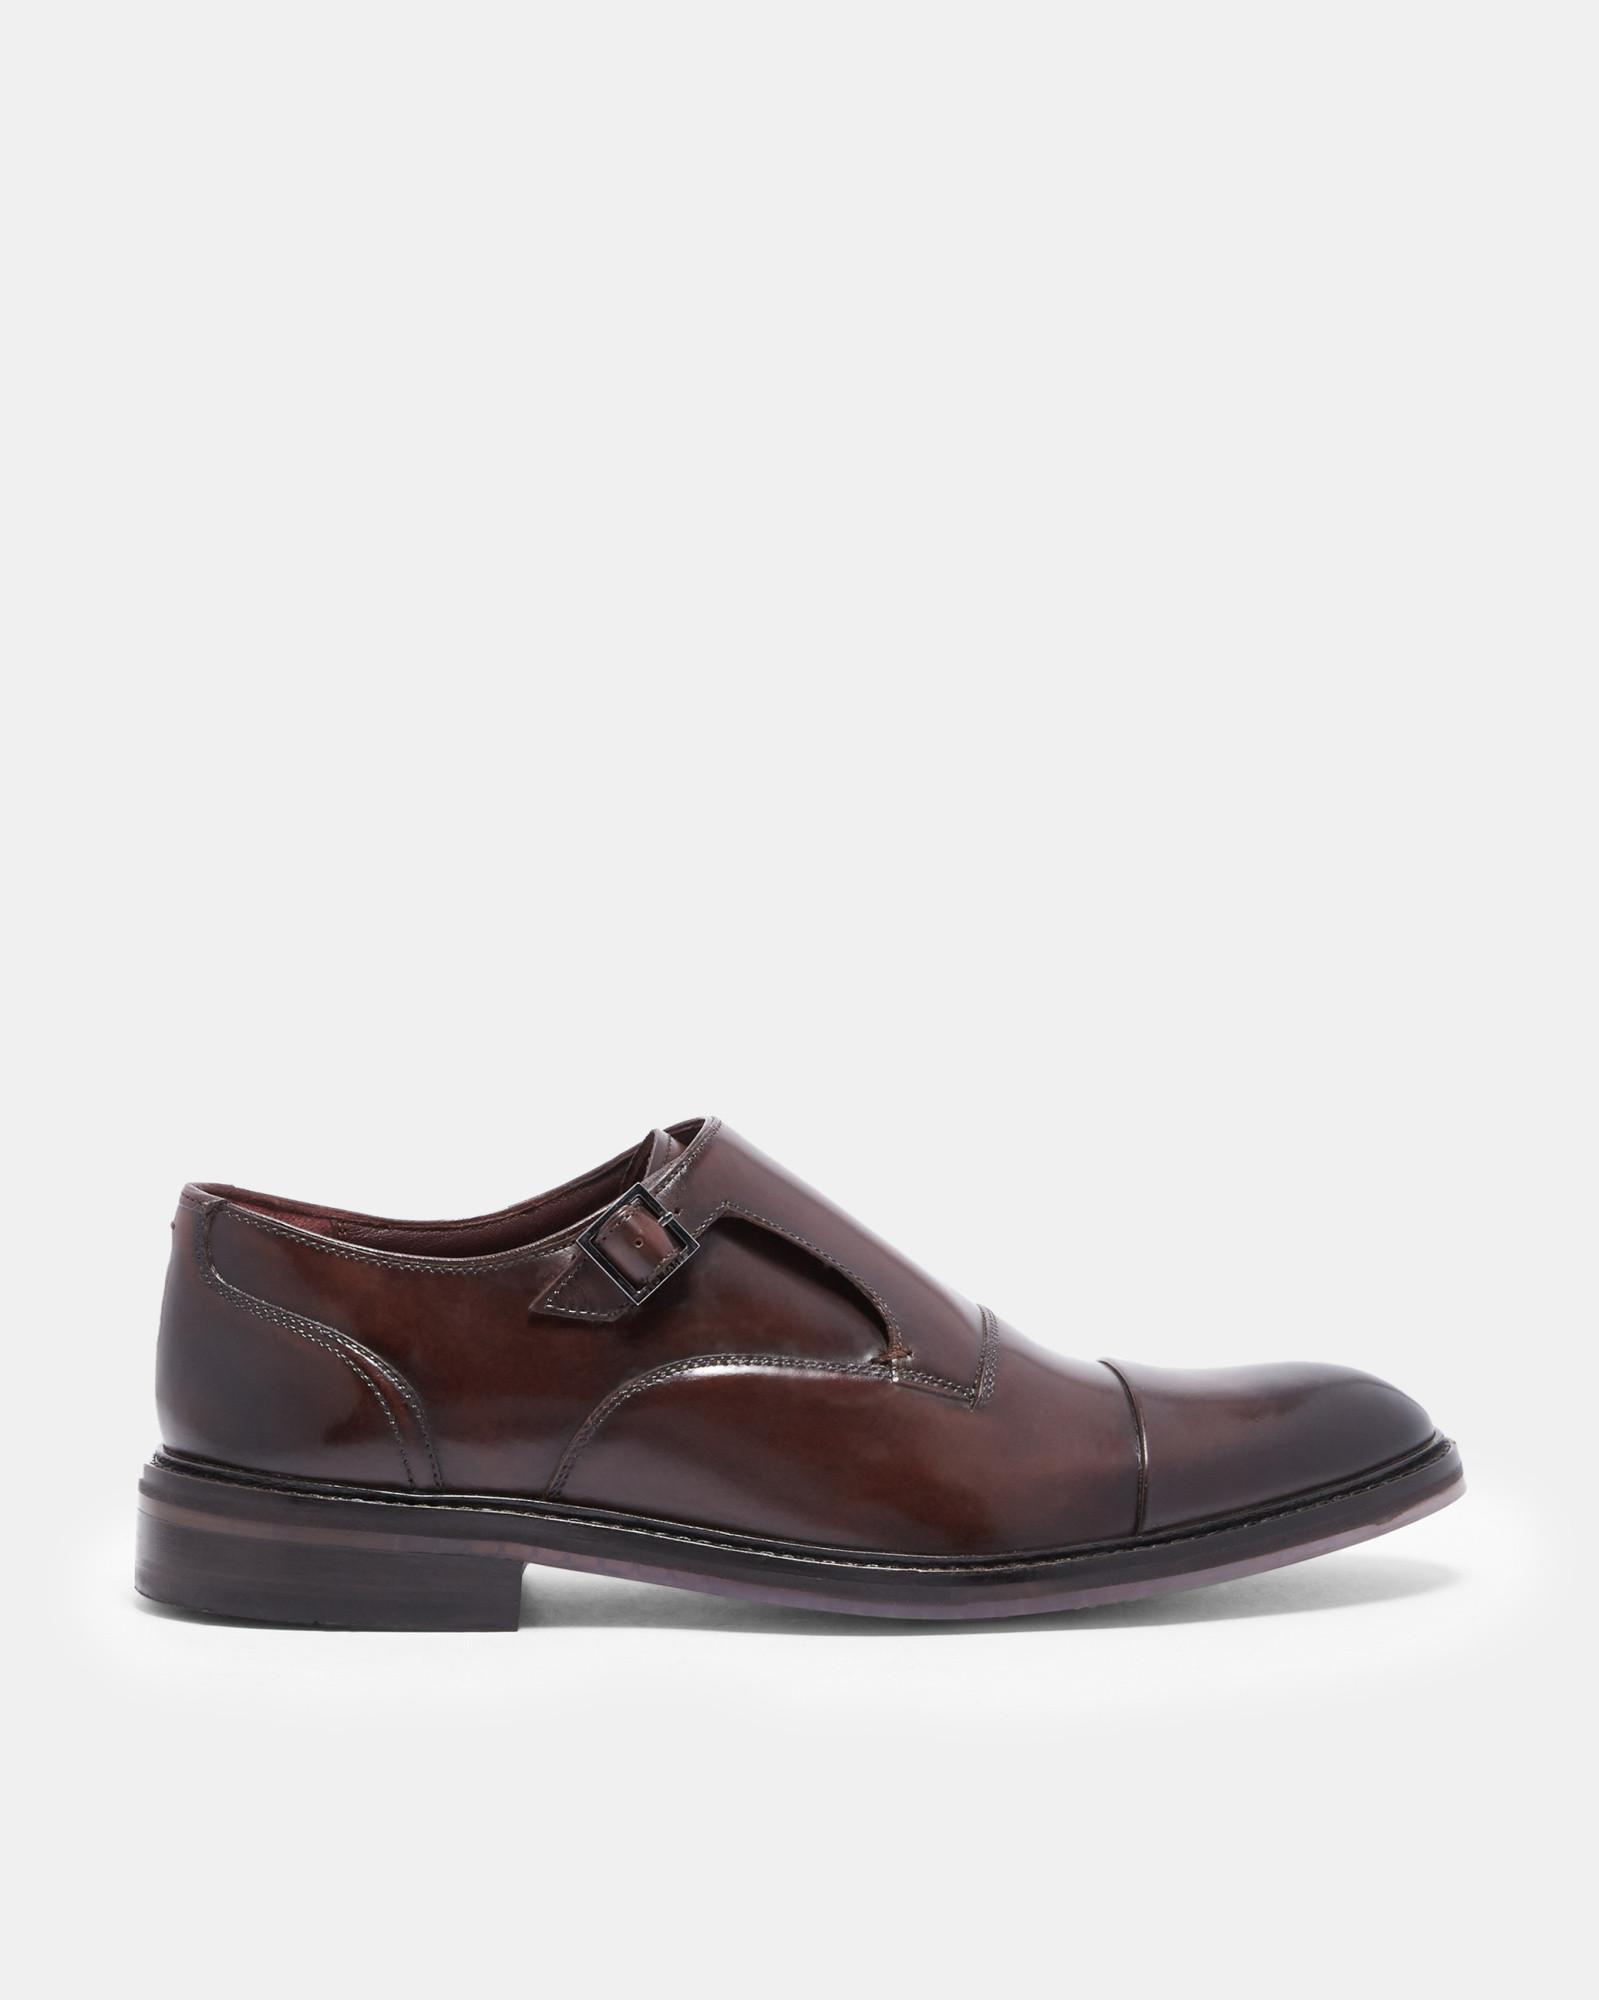 5f2245483574 Ted Baker Leather Monk Strap Shoes in Brown for Men - Lyst